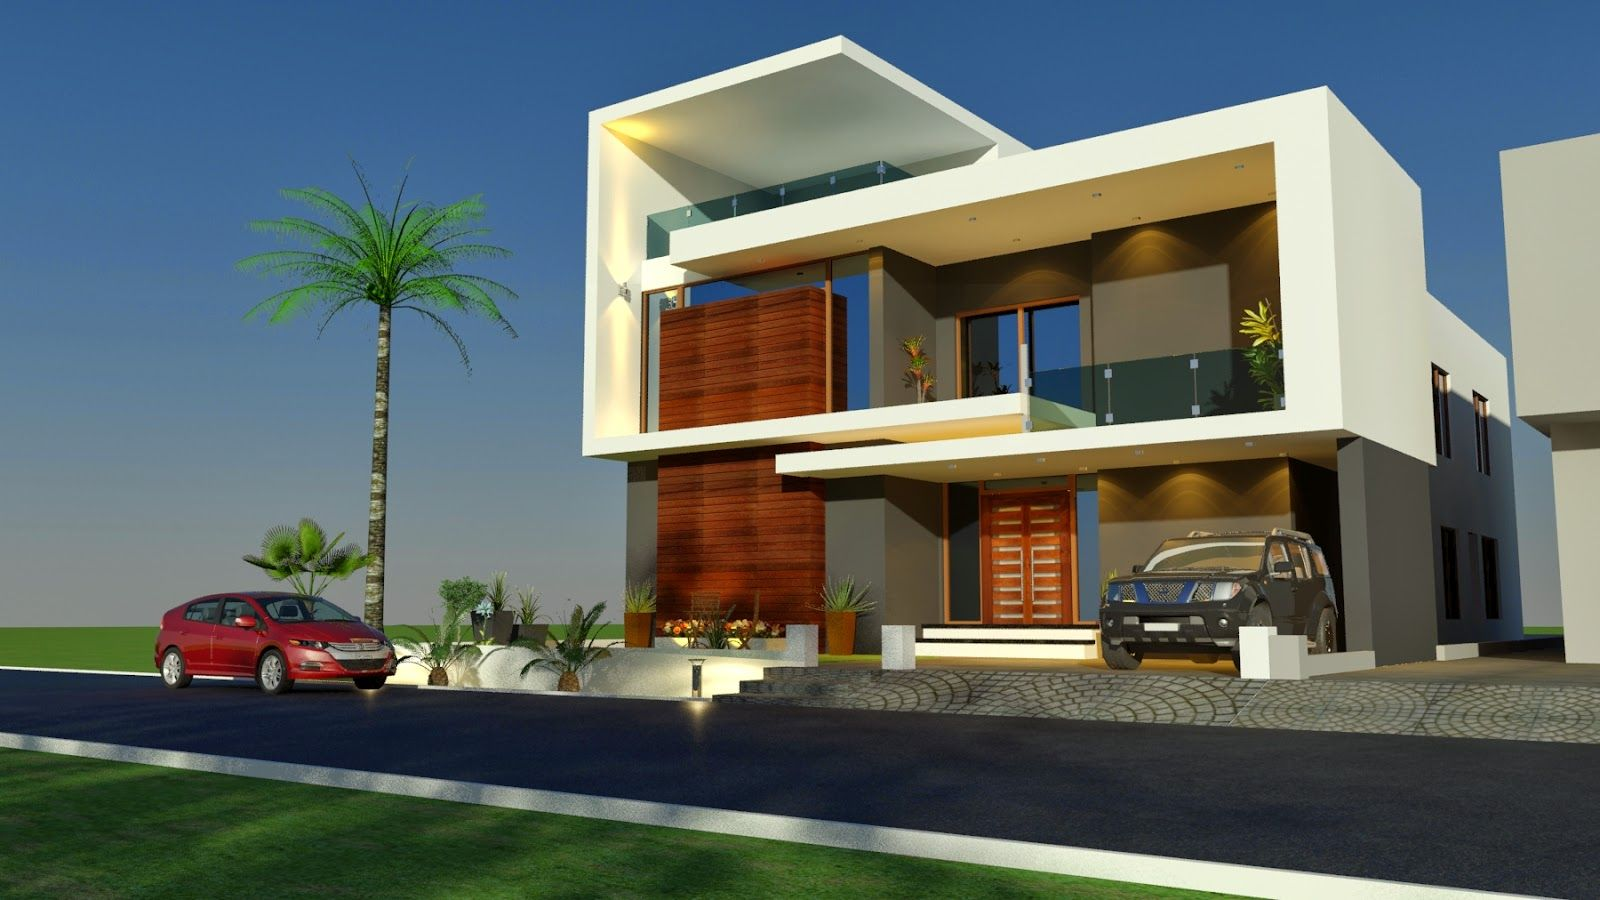 3D Front Elevation.com HouseHomeContemporaryModern